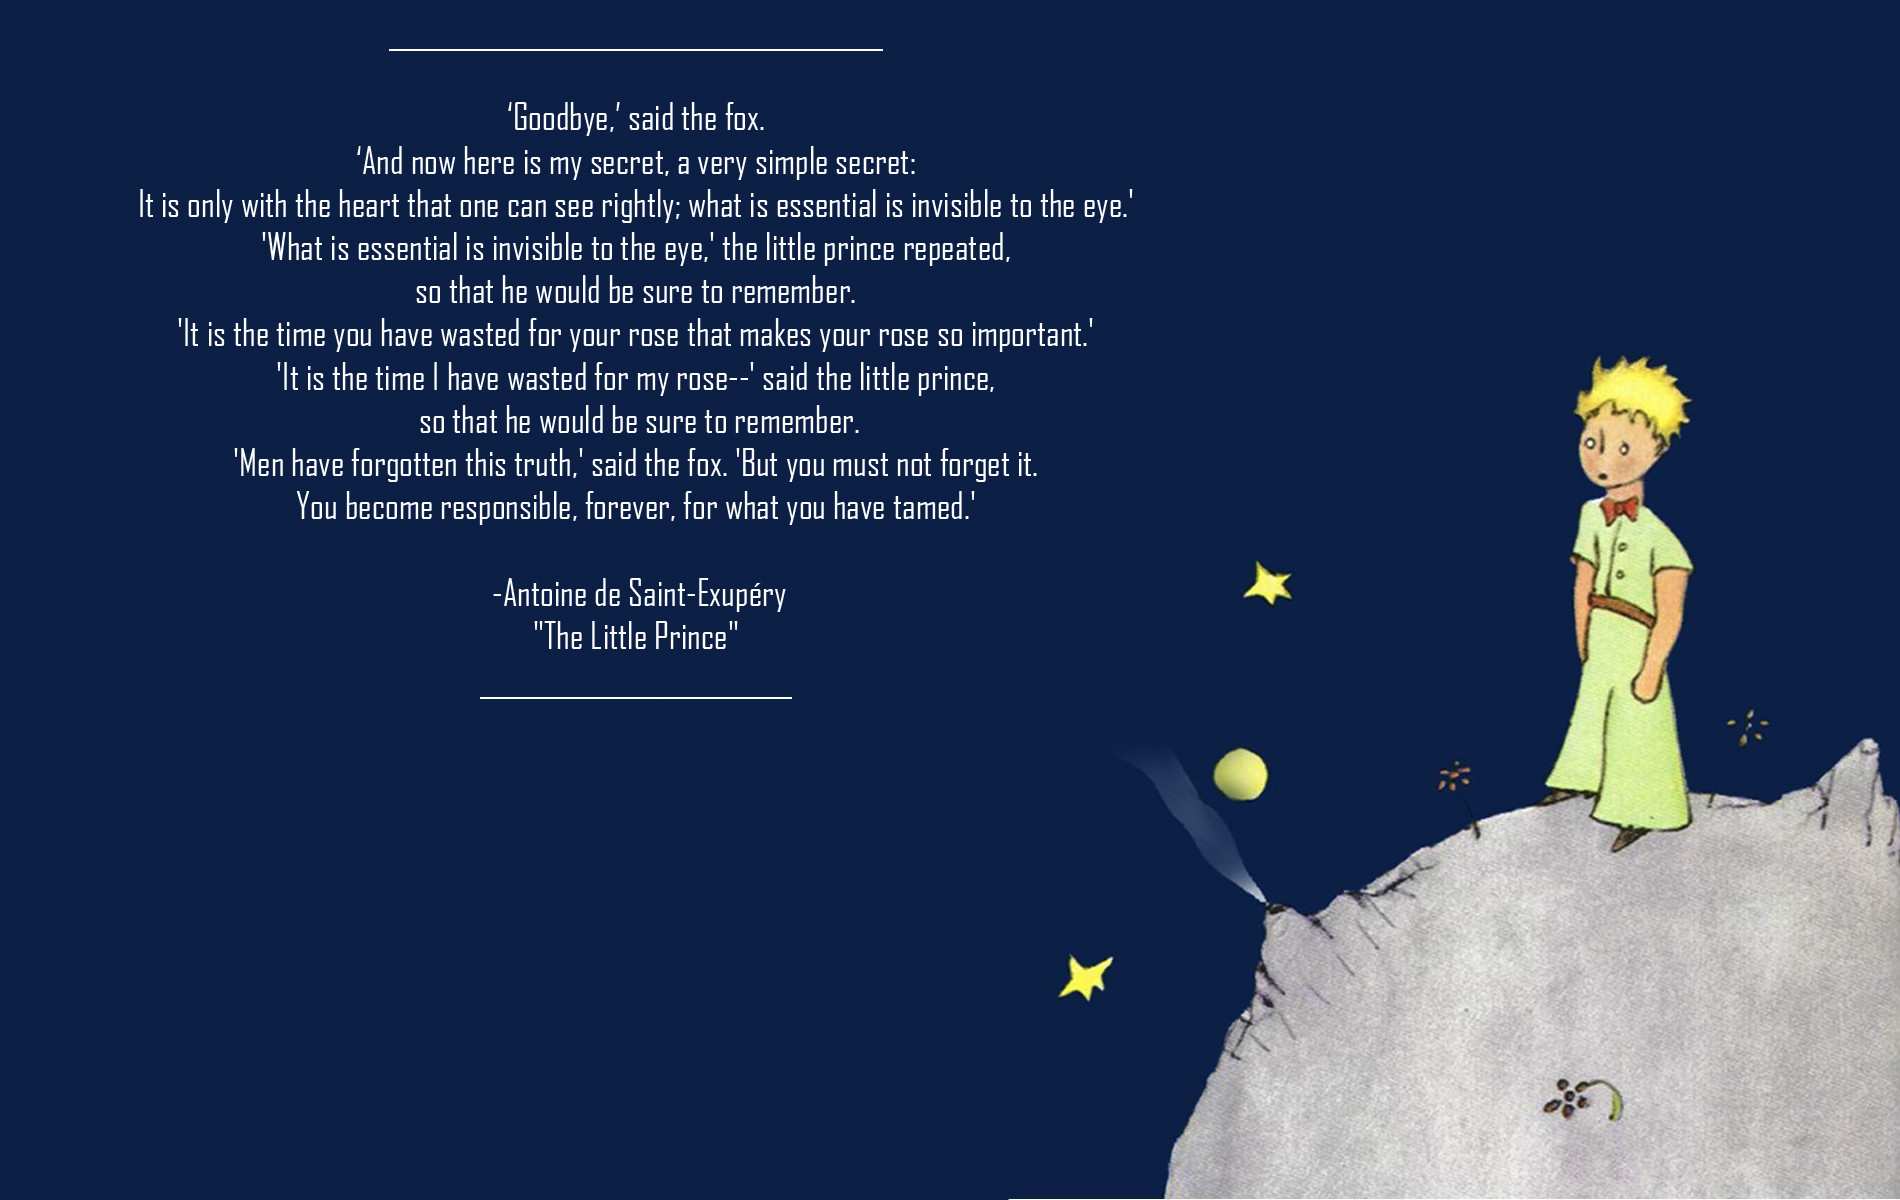 The Little Prince Quotes Inspirational Sayings: Little Prince Exupery Quotes. QuotesGram